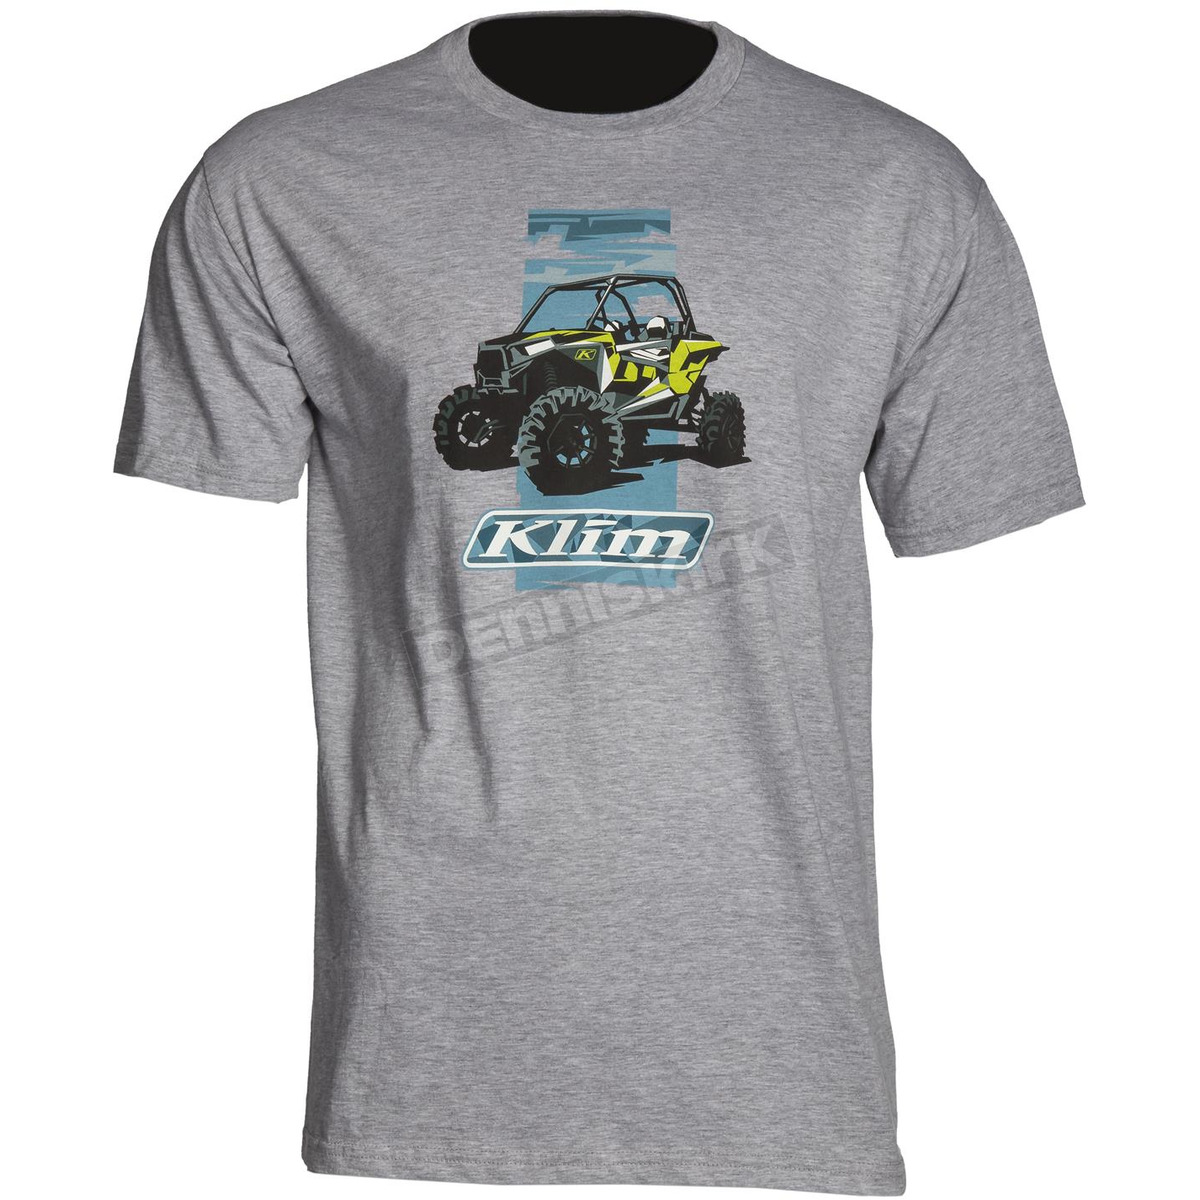 852a5b9e5 Klim Light Gray RZR Graphic T-Shirt - 3954-000-130-630 Dirt Bike ...